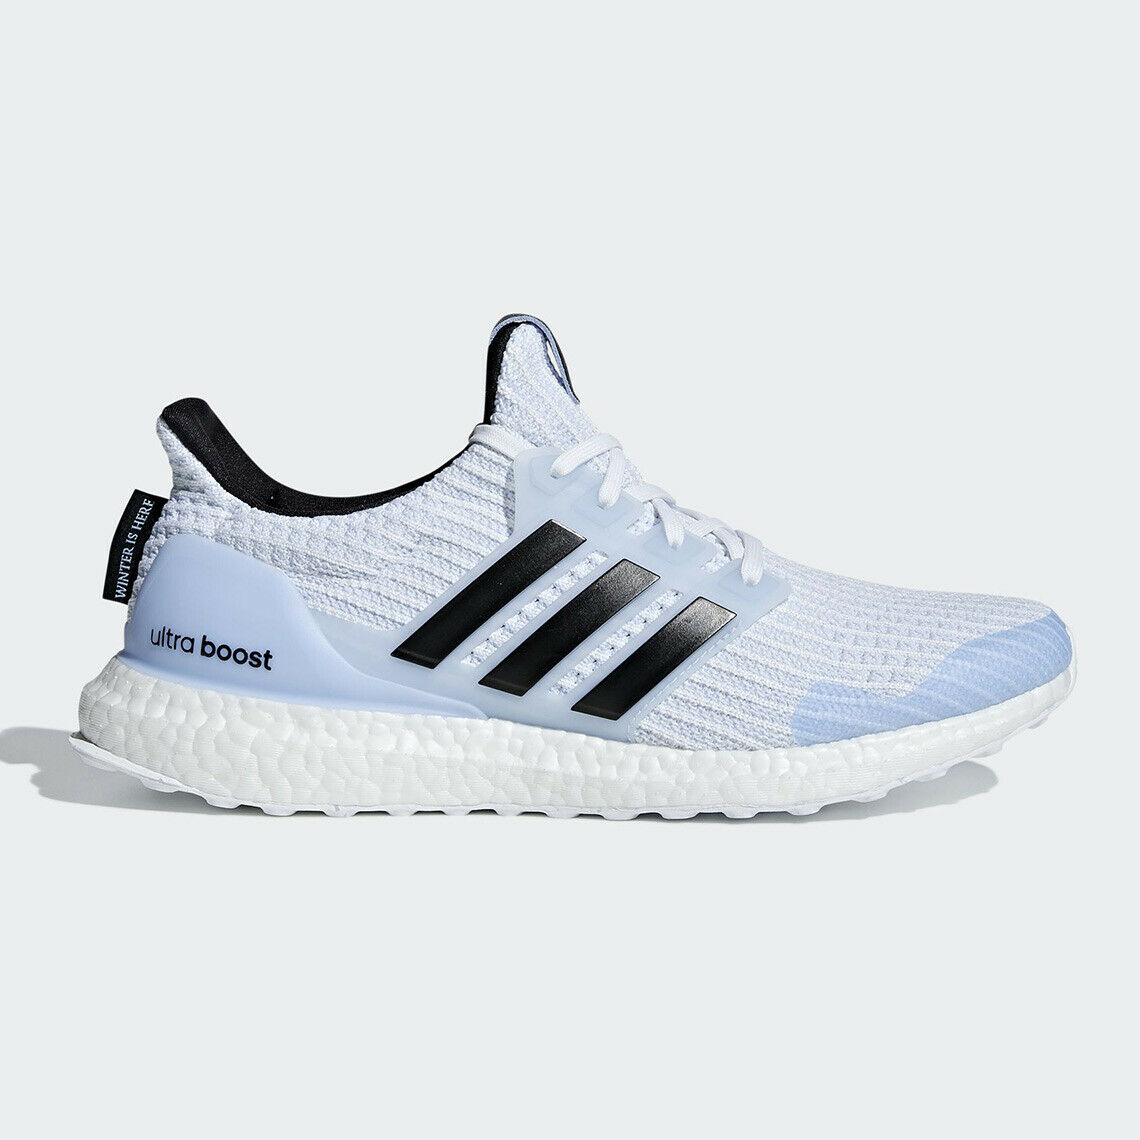 Adidas UltraBoost GOT Game of Thrones White Walkers EE3708 Ultra Boost shoes NIB